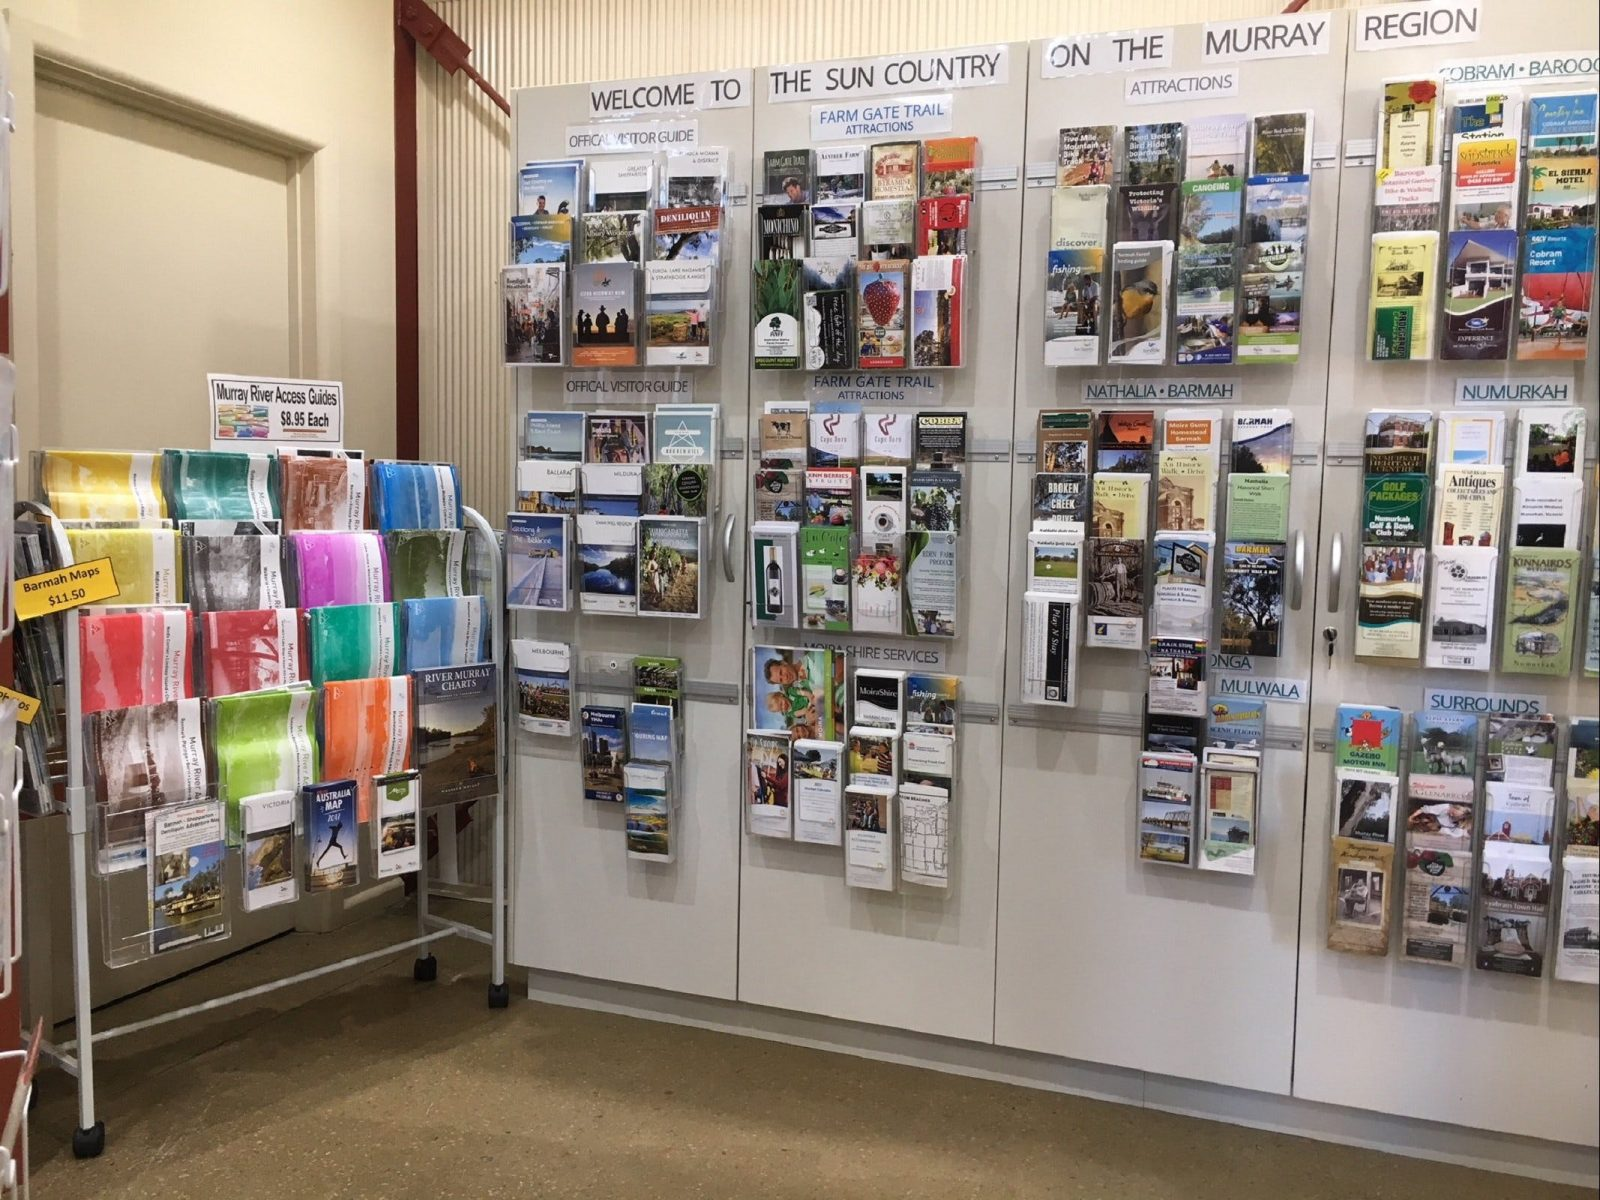 Maps, Brochures, Official Visitor Guides and more